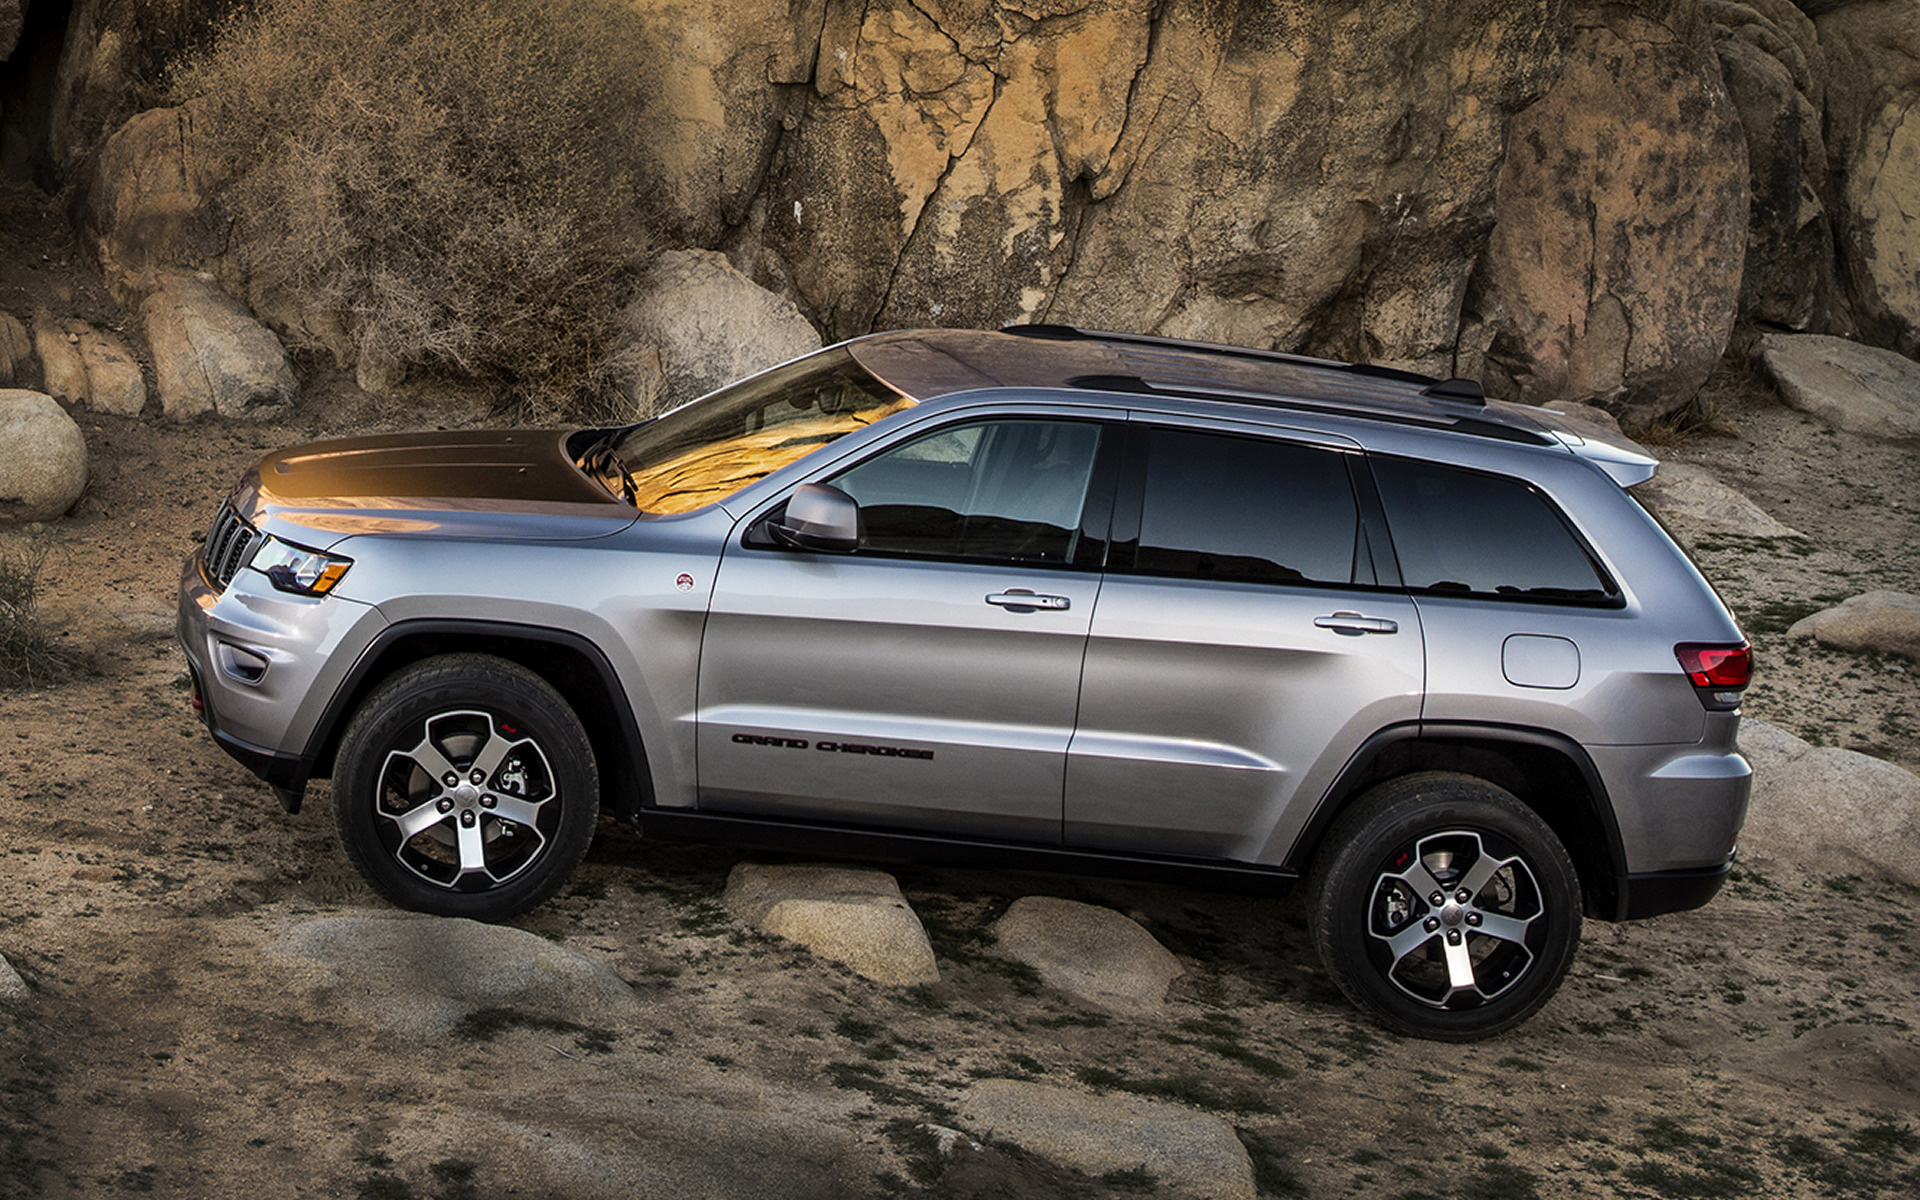 2017 Jeep Grand Cherokee Trailhawk   Wallpapers and HD Images 1920x1200